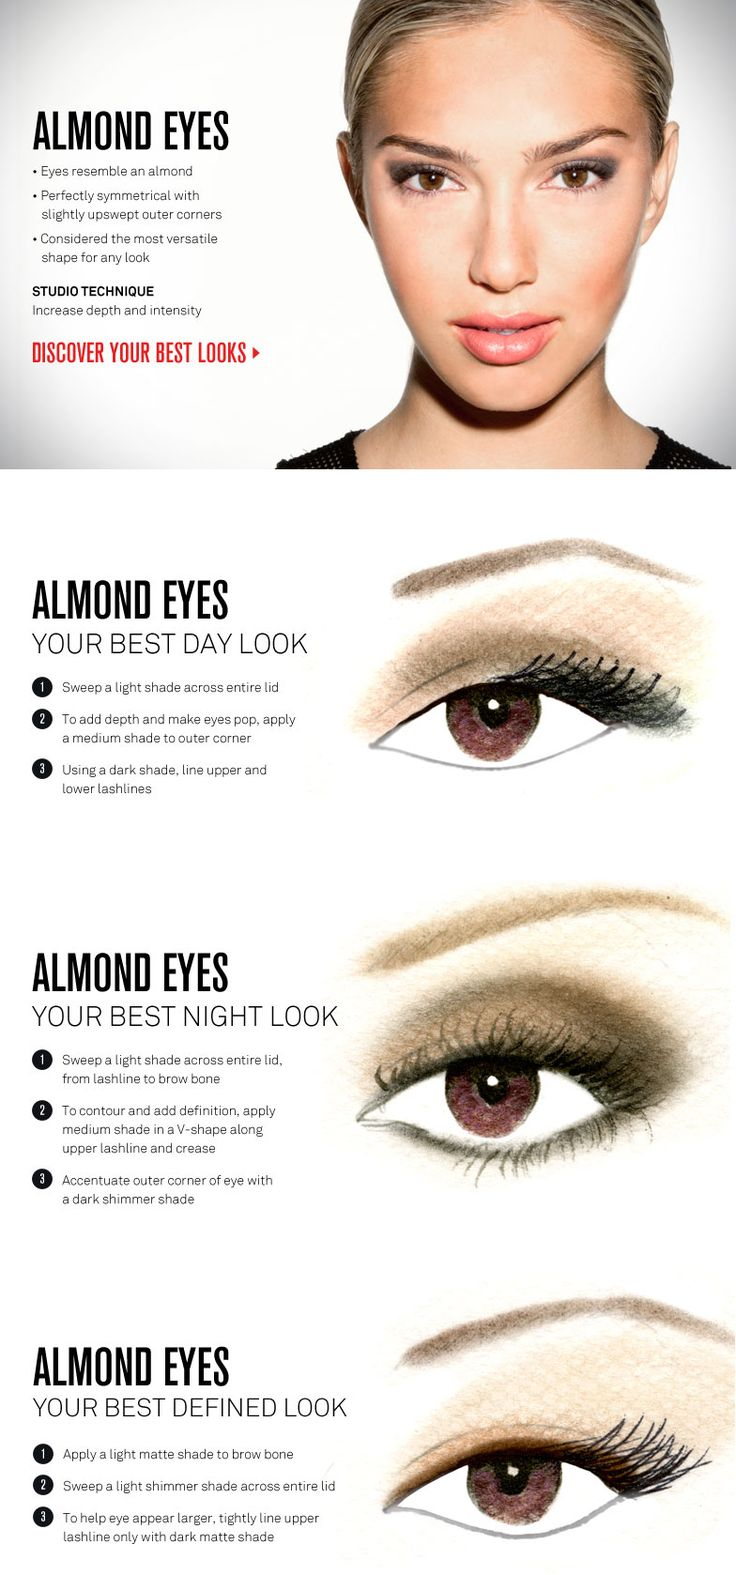 Almond Eyes Makeup You - Makeup Vidalondon